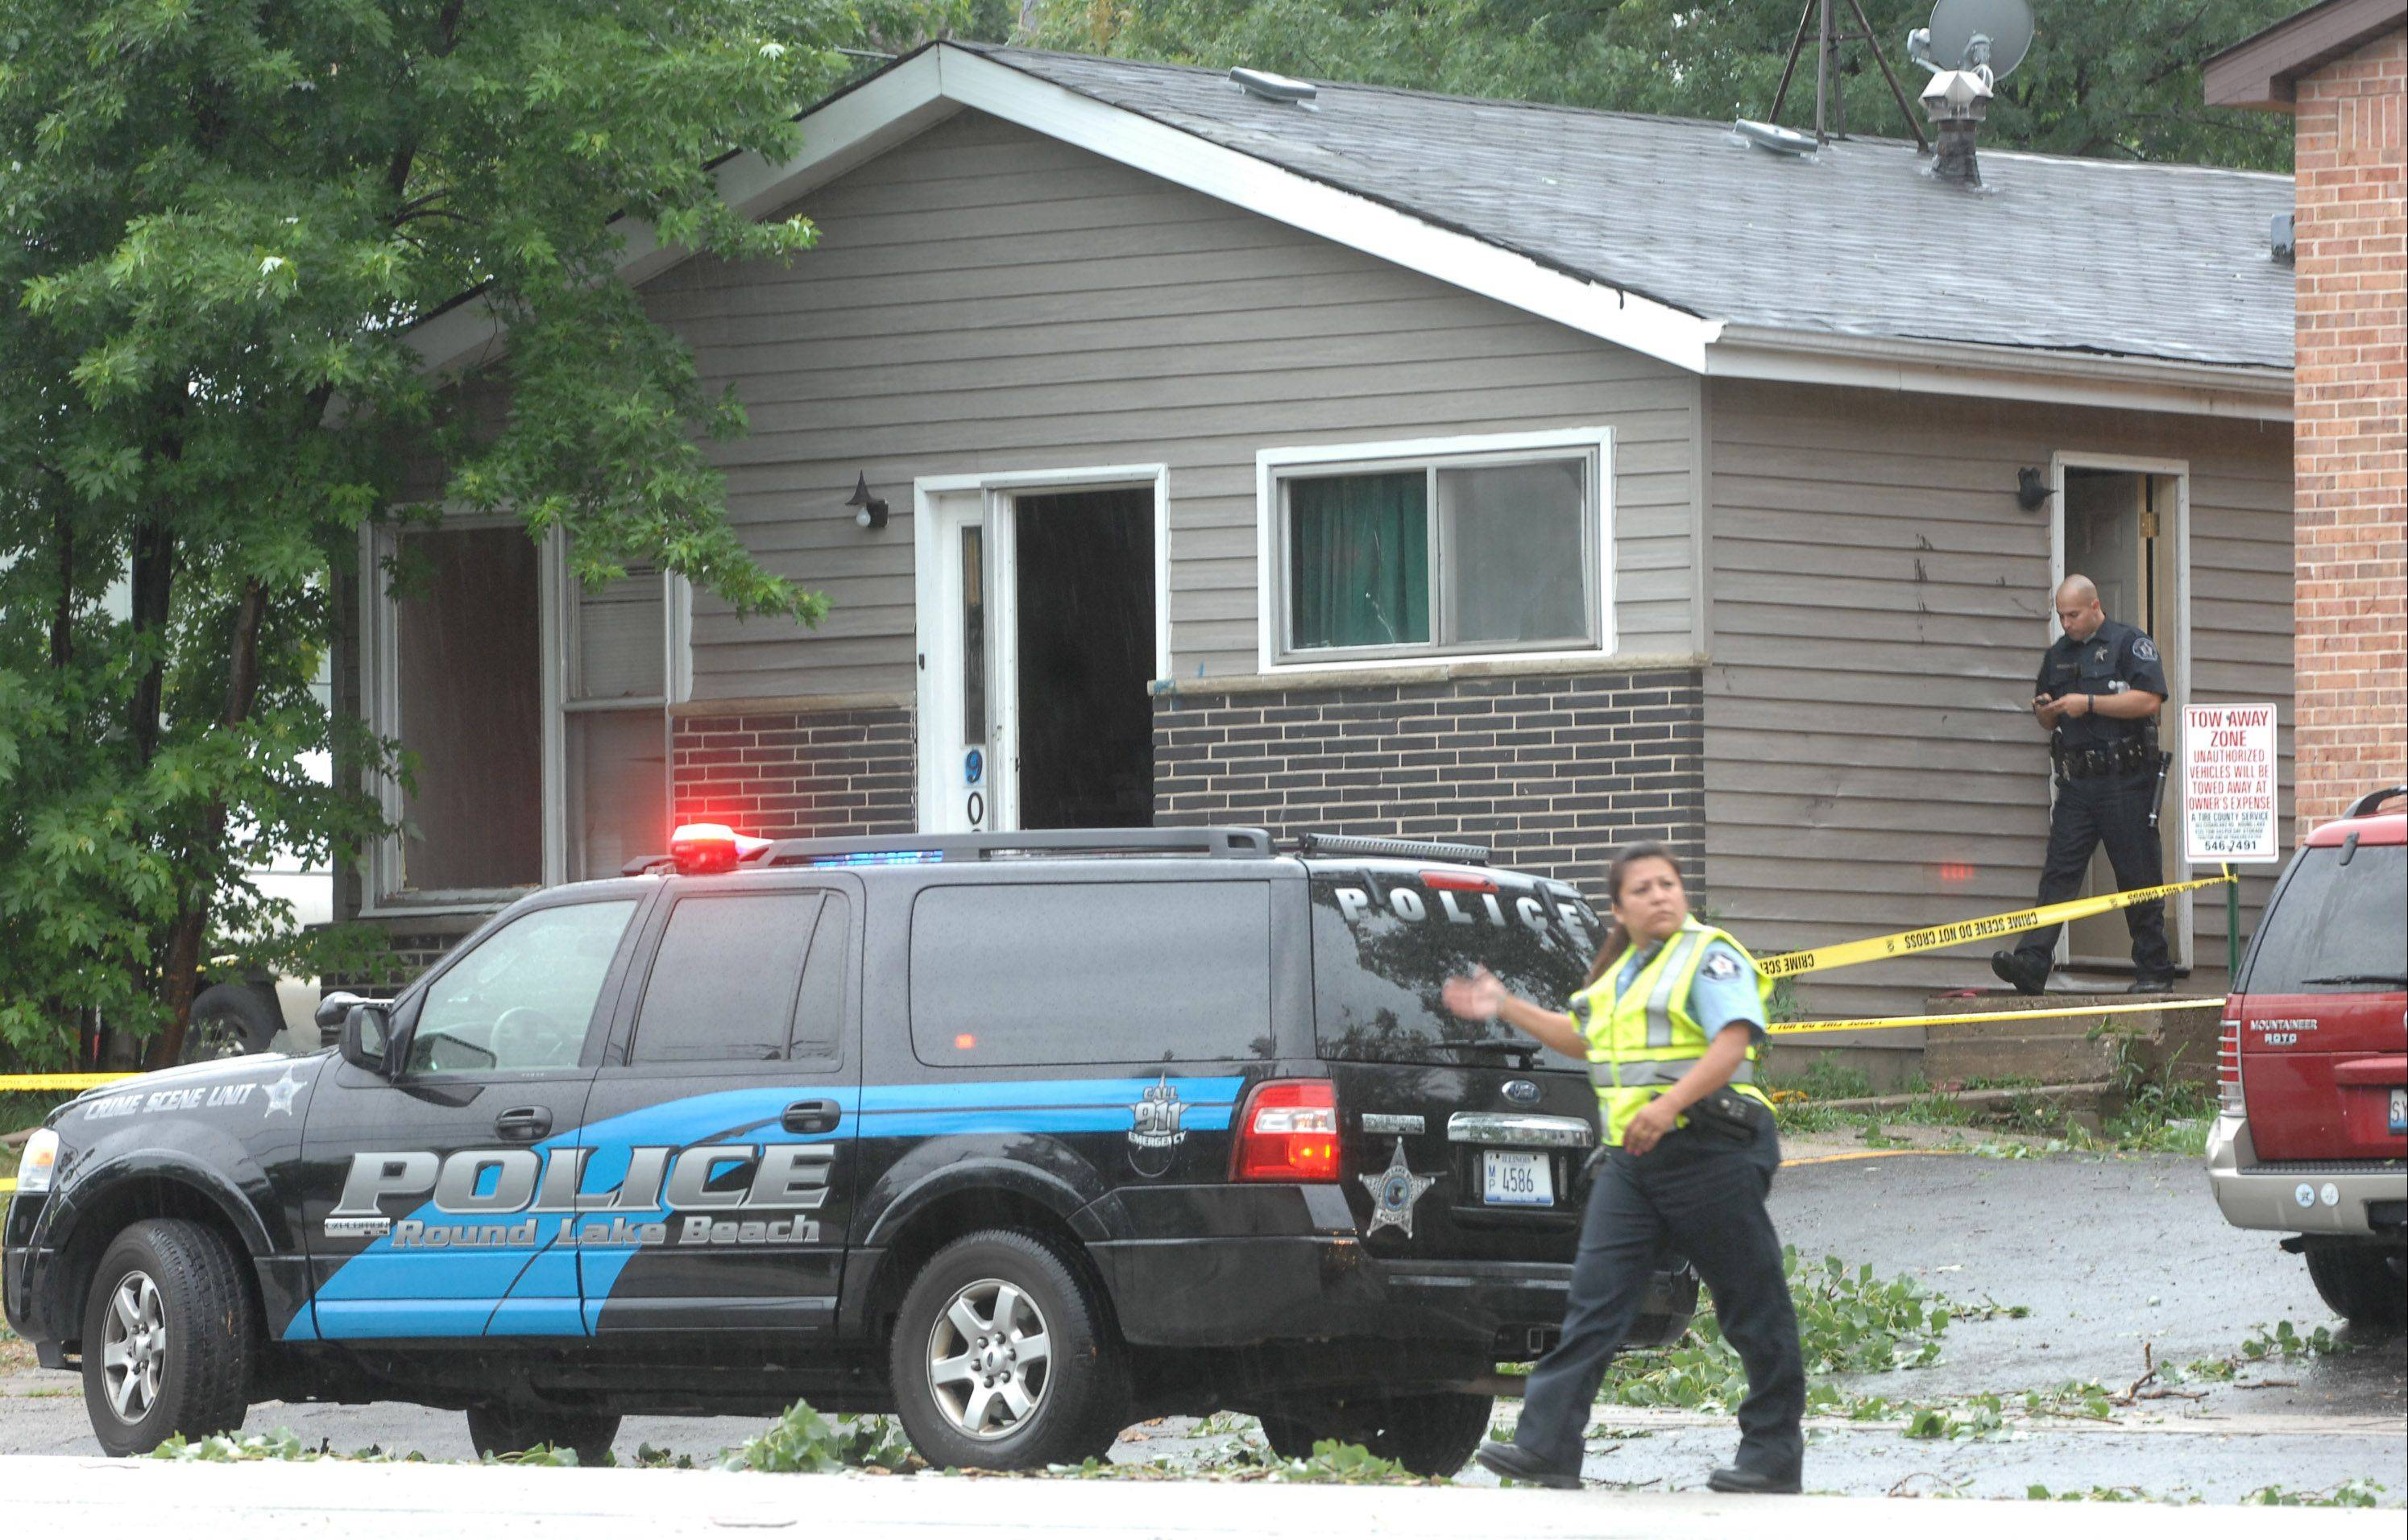 Police officials investigate the scene of a standoff Monday morning in the 900 block of Cedar Lake Road in Round Lake Beach.